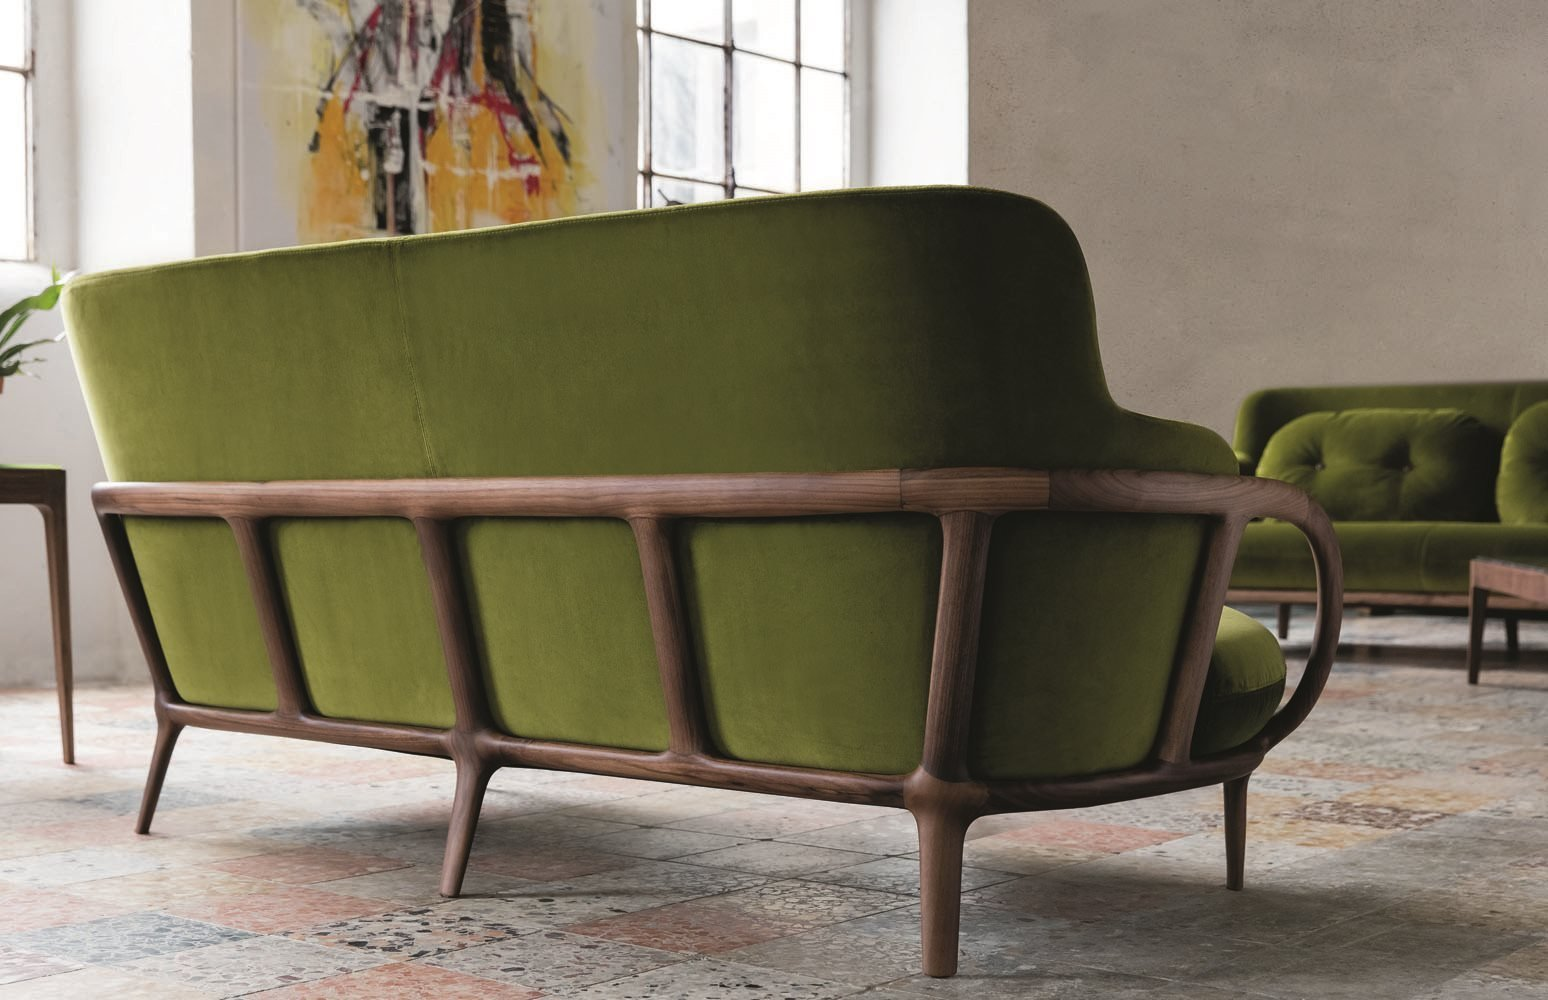 Allison Sofa Chair from Porada, designed by A. Borgogni